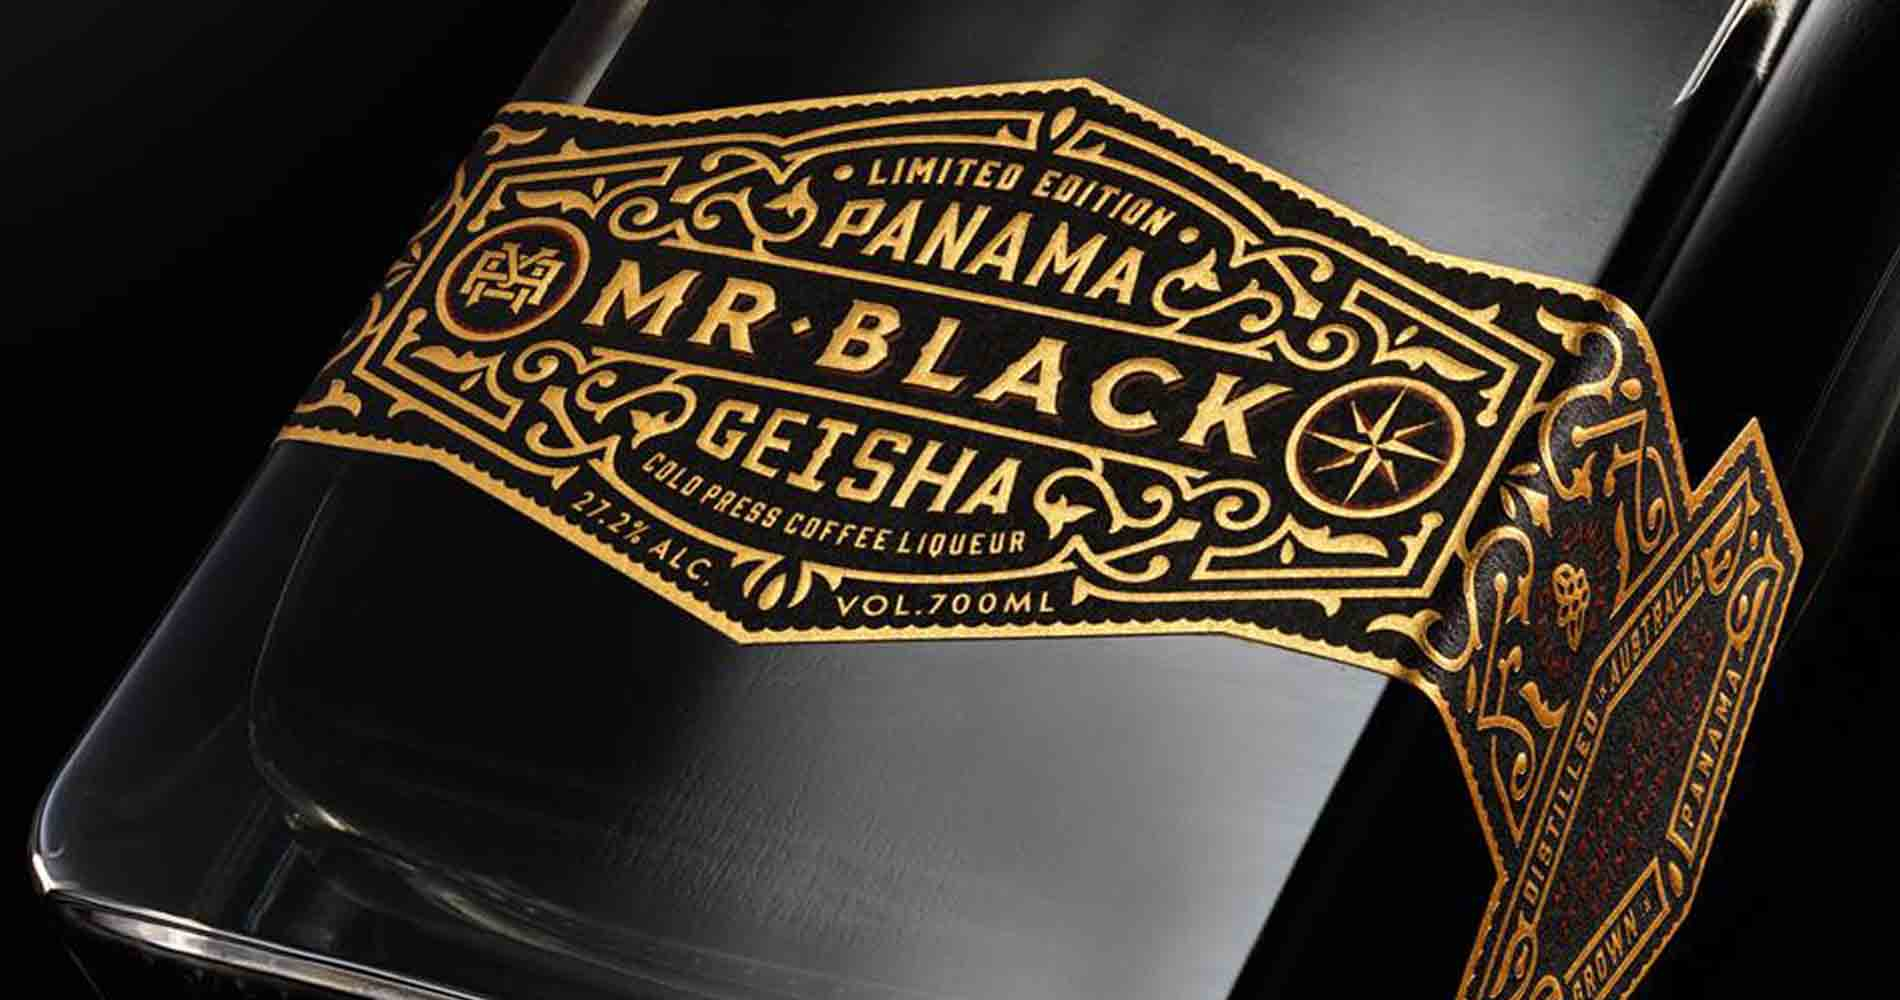 Mr Black Bottle